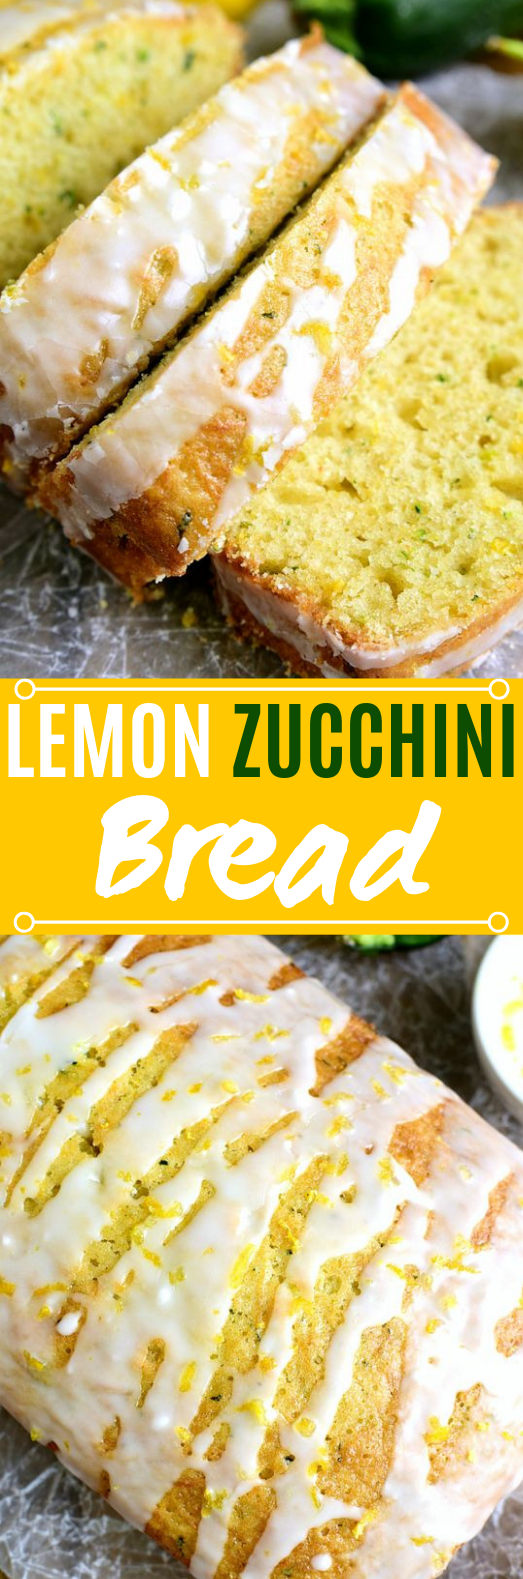 Lemon Zucchini Bread #cake #baking